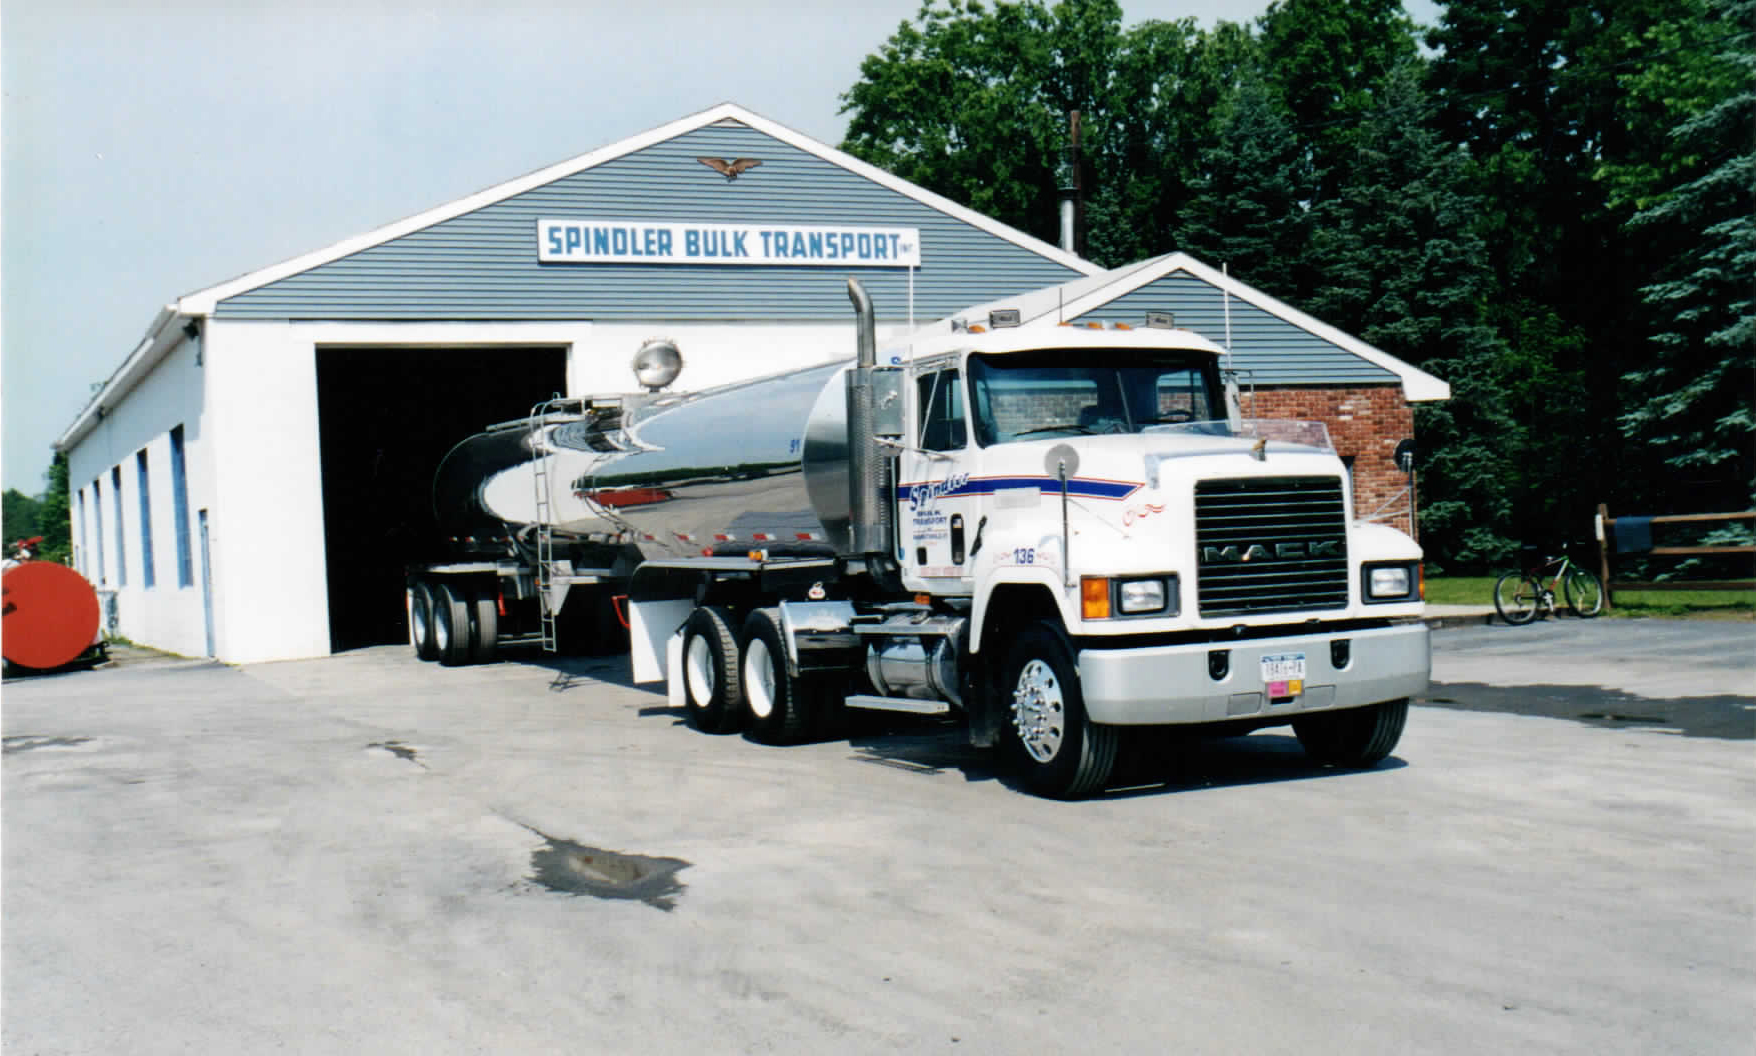 Water transport services in Washingtonville, NY